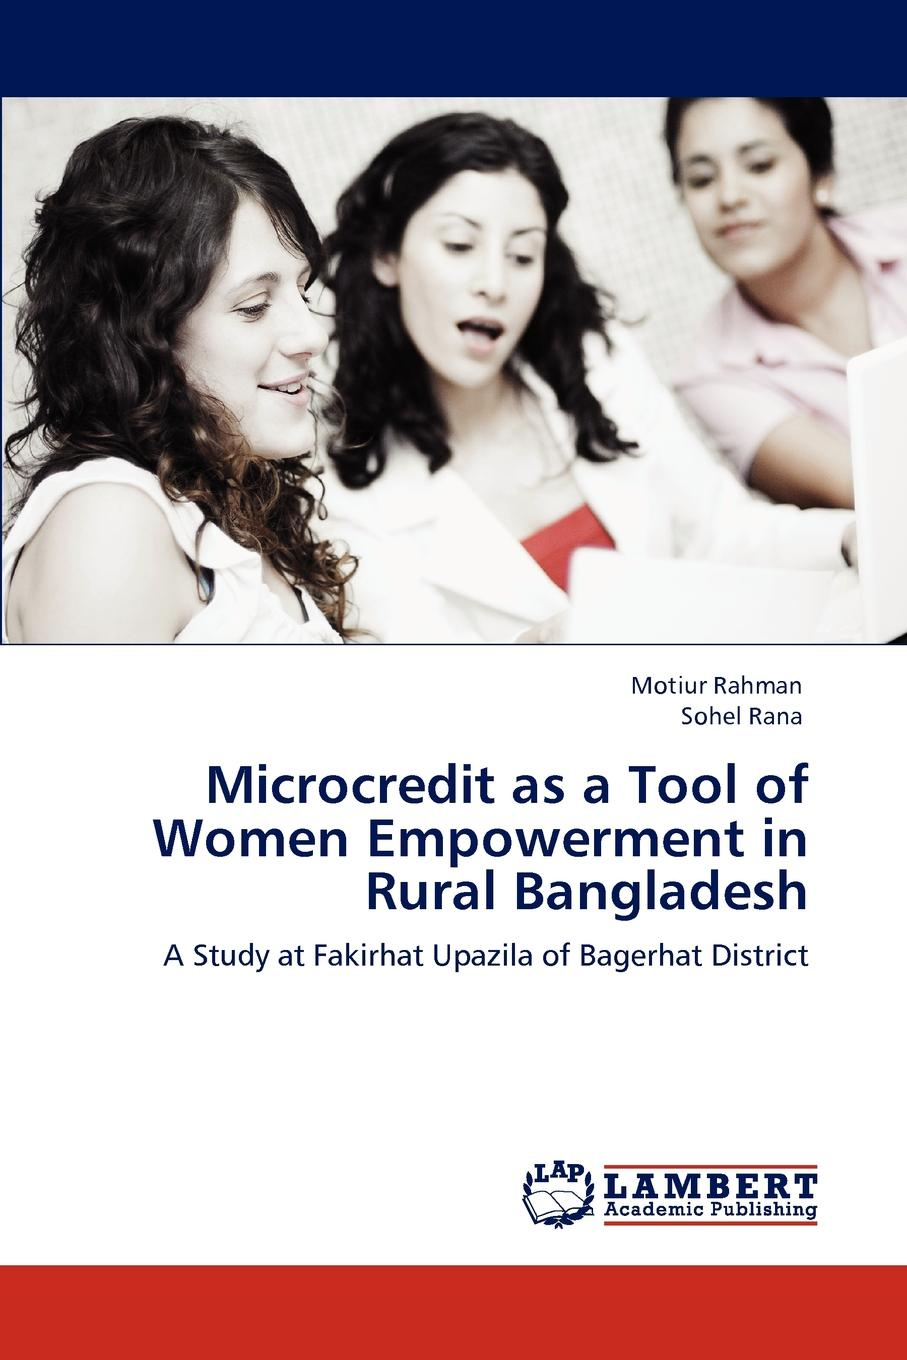 Motiur Rahman, Sohel Rana Microcredit as a Tool of Women Empowerment in Rural Bangladesh entrepreneurial orientations of rural women